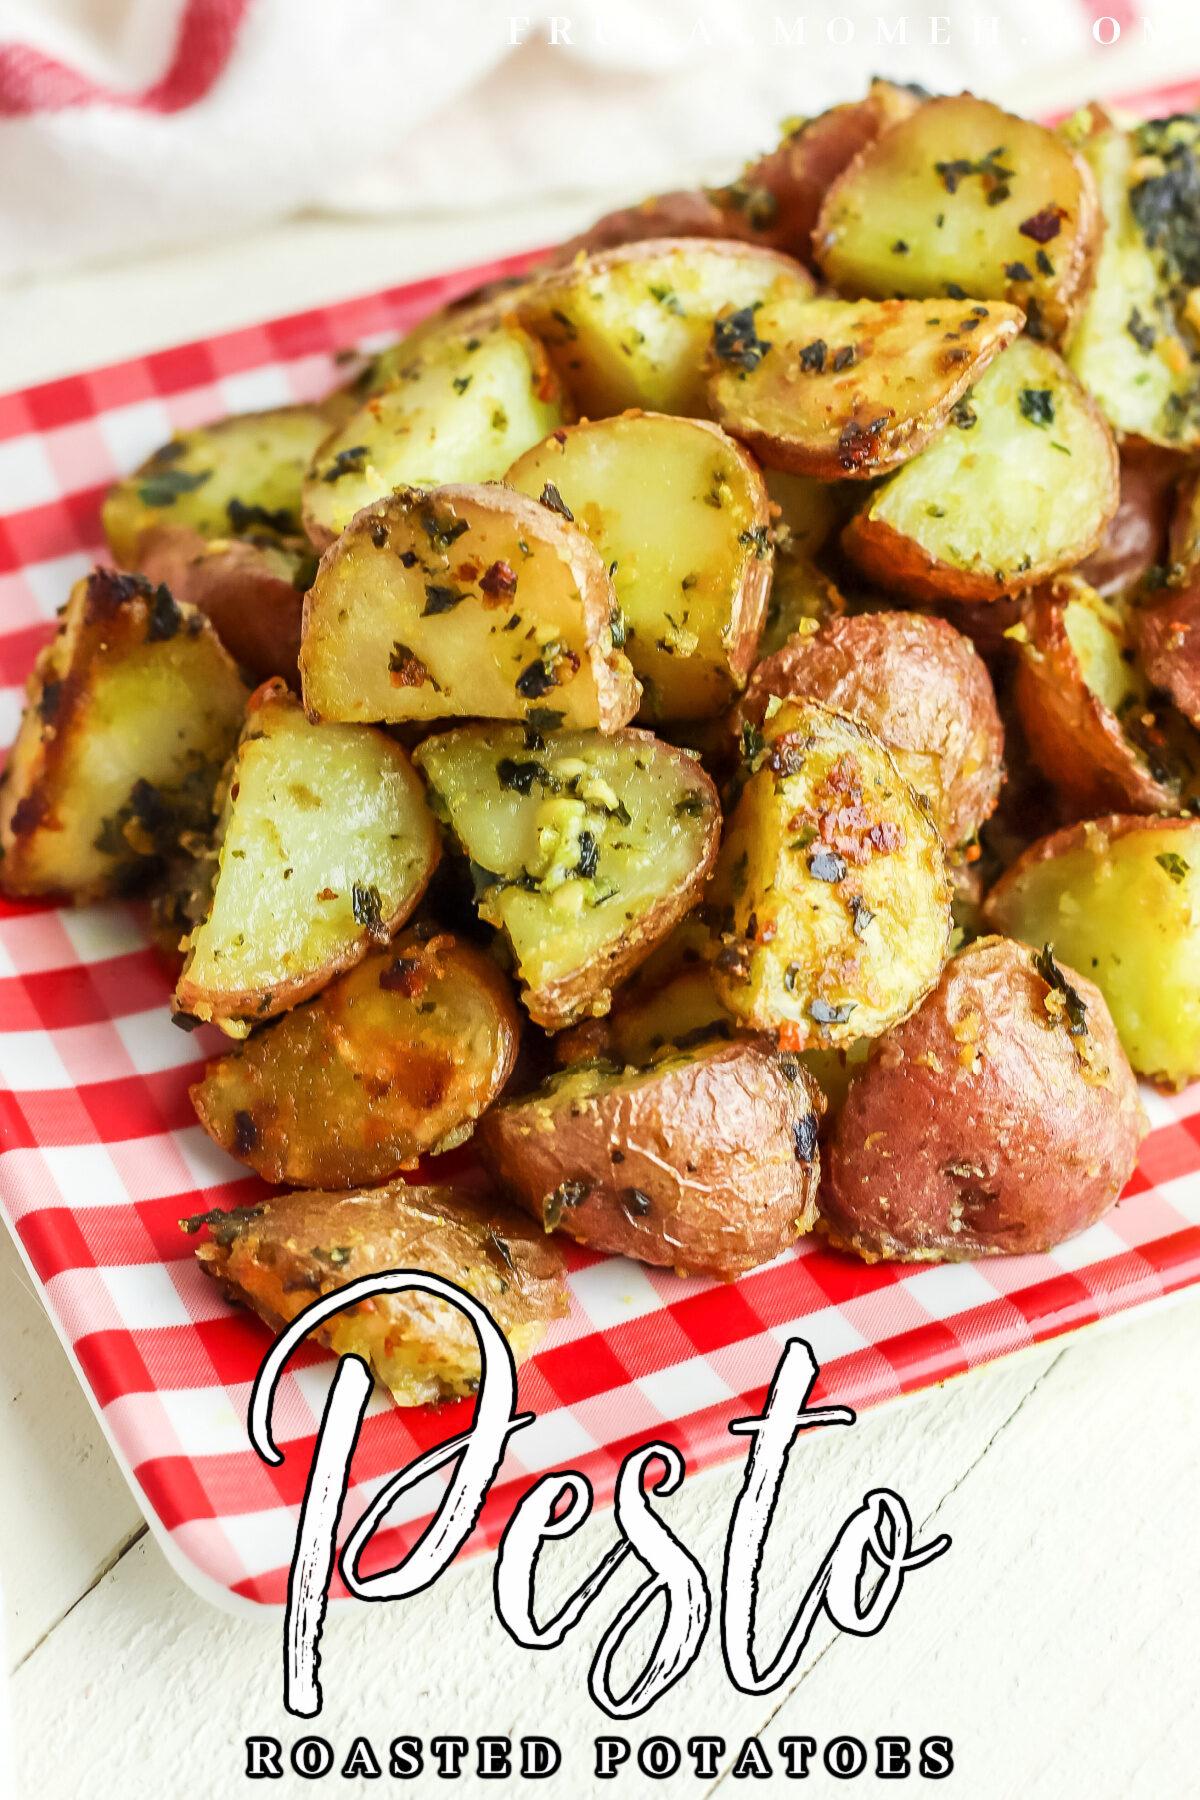 These Pesto Roasted Potatoes are such a classic side dish that goes well with a variety of proteins! Tender potatoes, coated with flavourful pesto and roasted to crispy perfection.